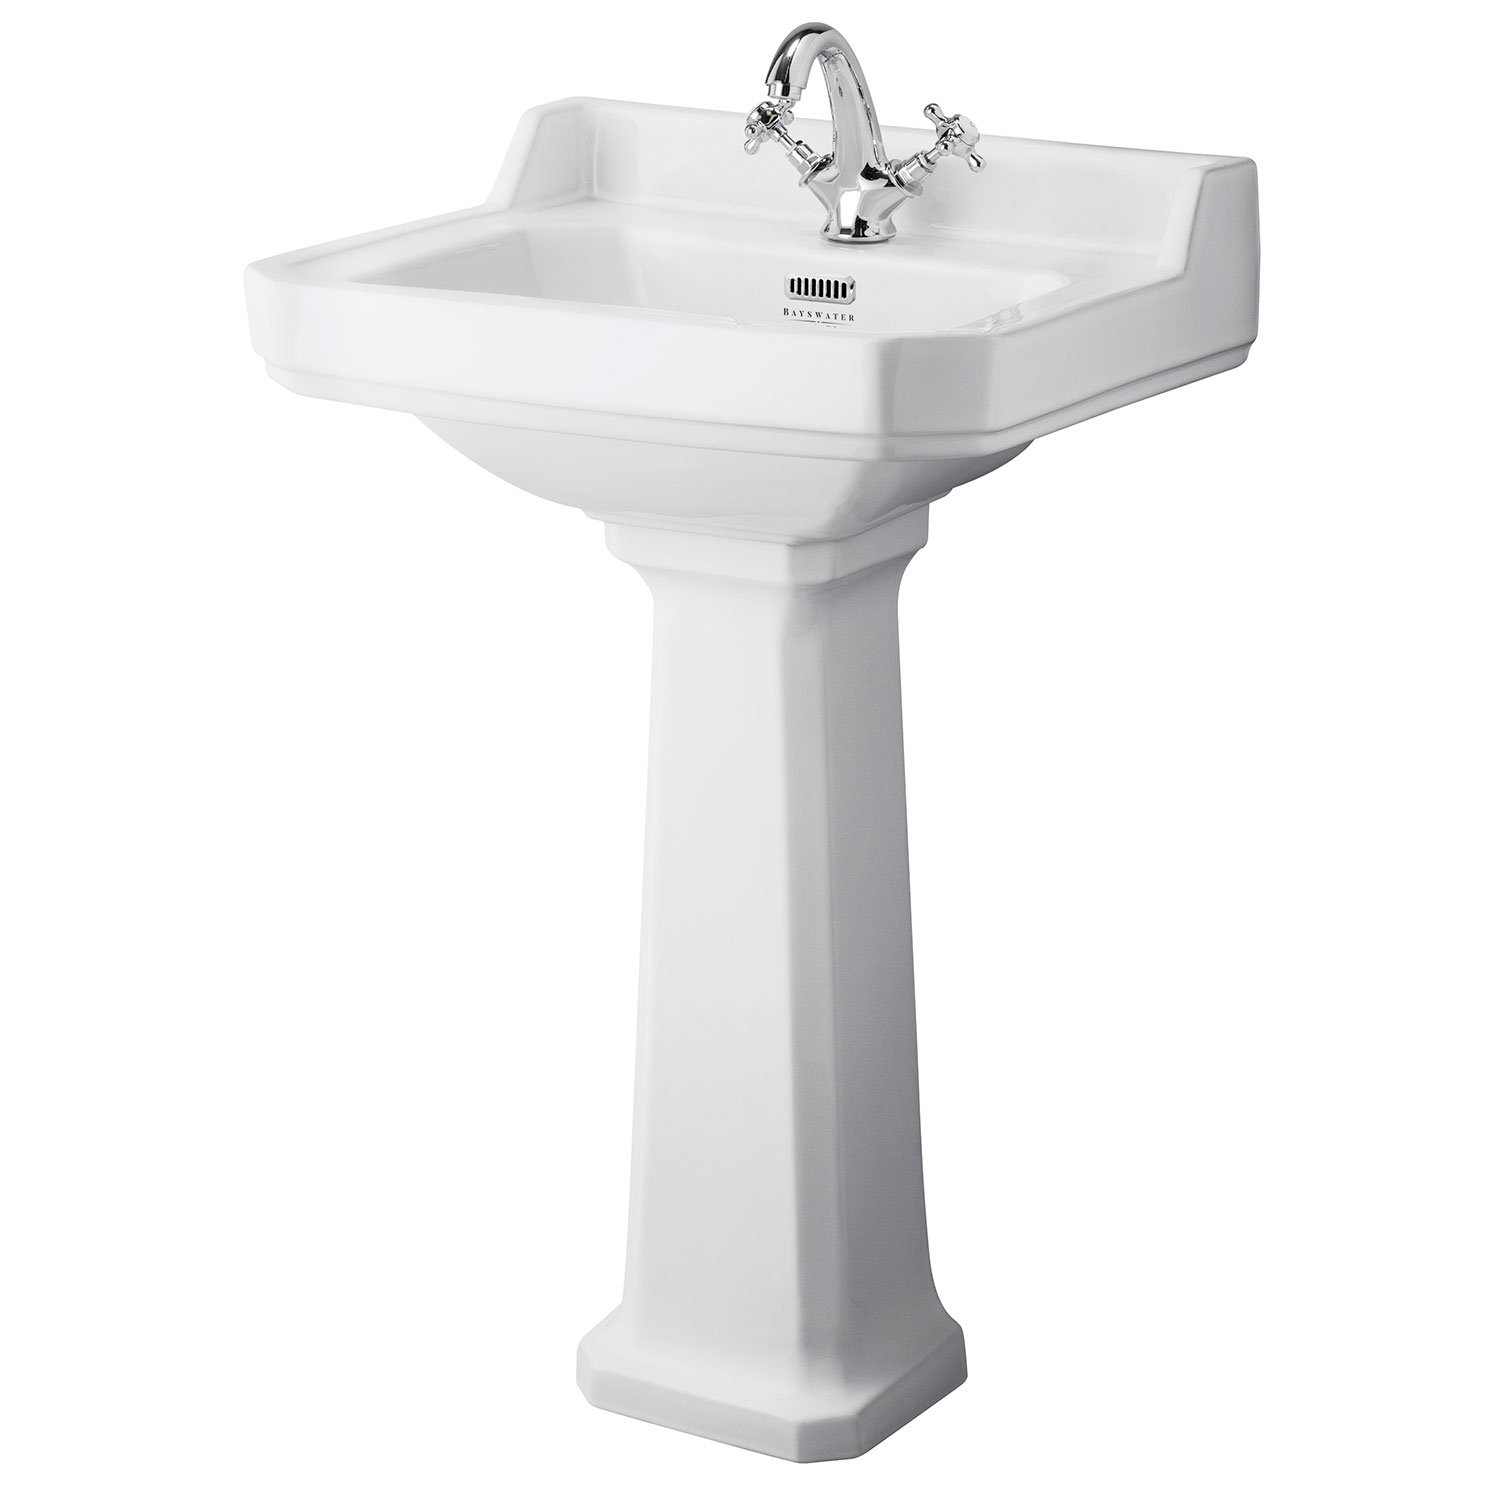 Bayswater Fitzroy Basin with Large Full Pedestal 560mm Wide 1 Tap Hole